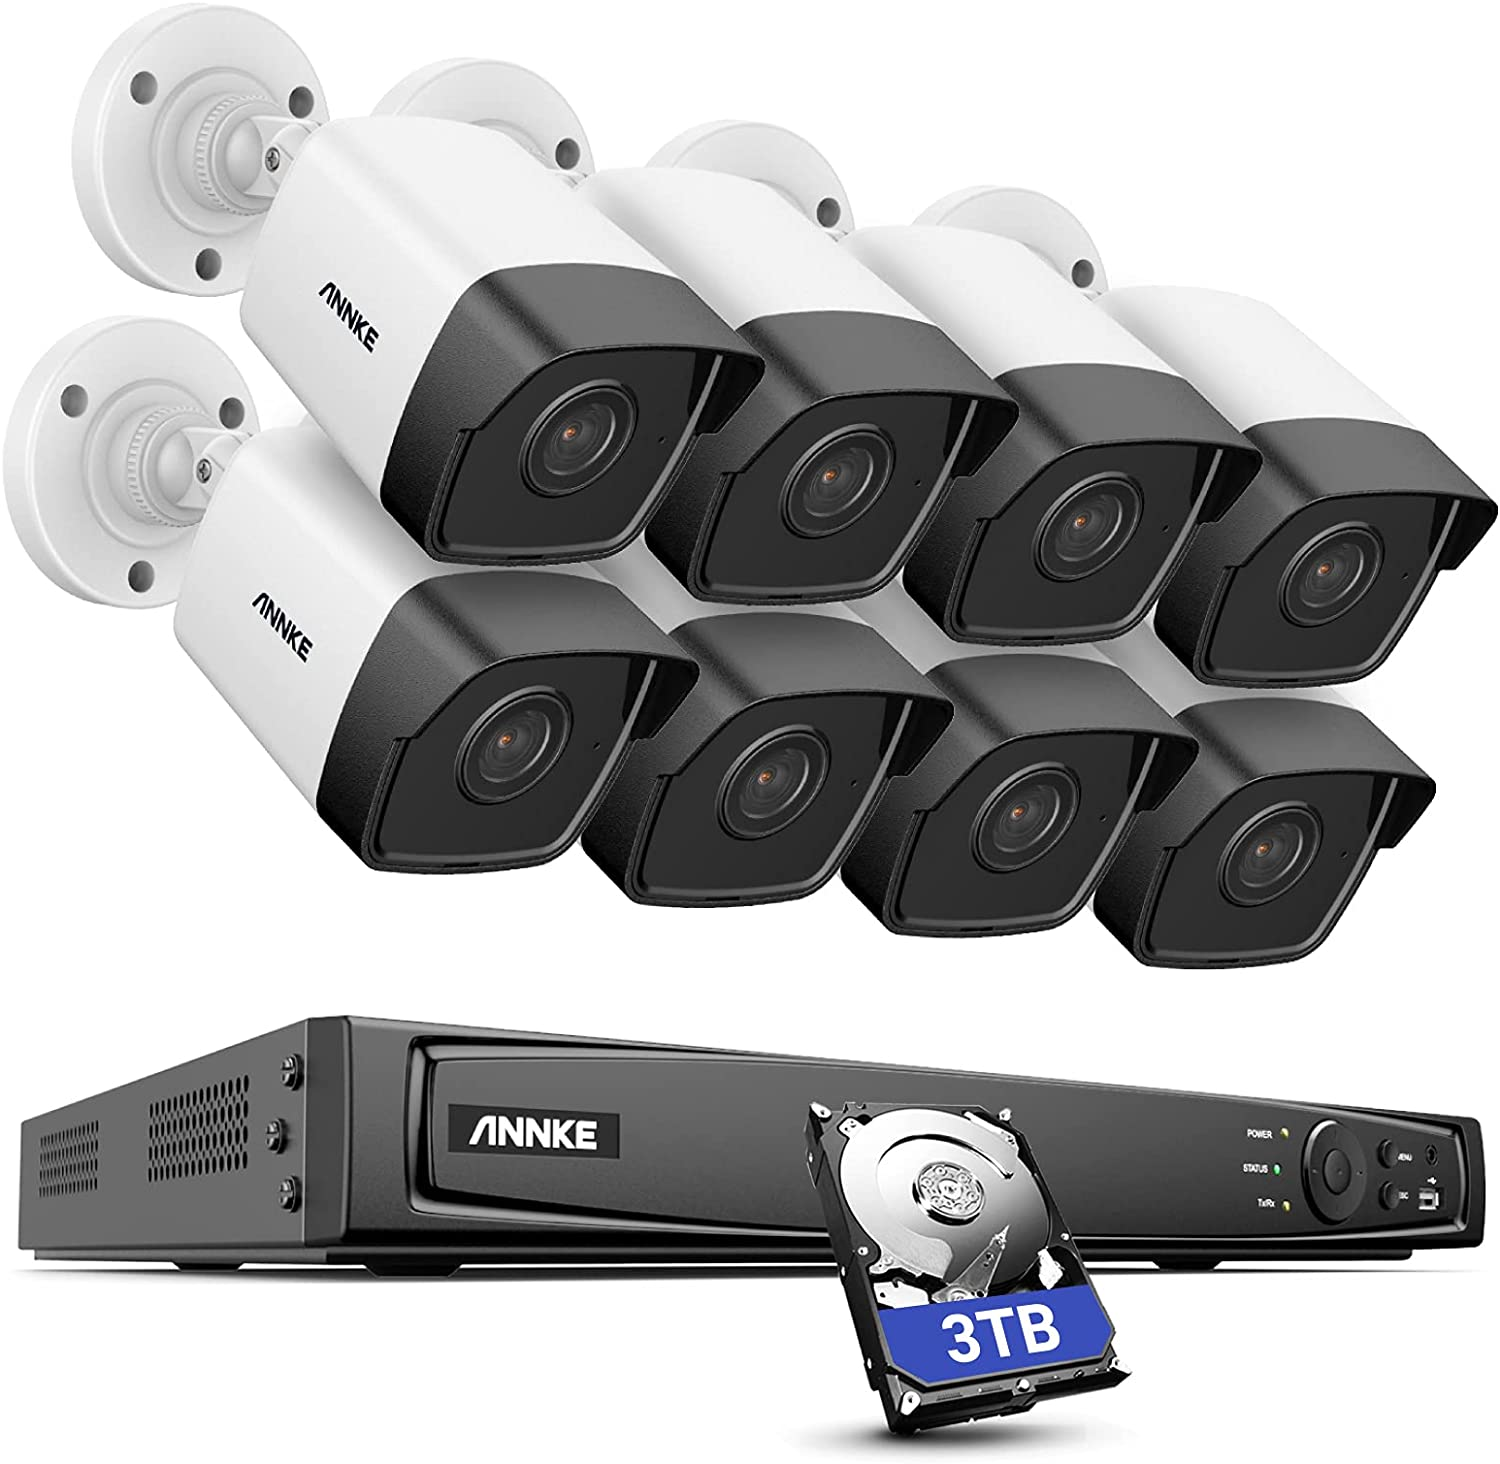 ANNKE H500 16CH Bullet PoE Security Camera System w/ 4K H.265+ NVR, 8X 5MP Outdoor IP Camera, 3TB HDD, Audio Recording, 100ft EXIR 2.0 Color Night Vision, IP67 Weatherproof, Remote Access